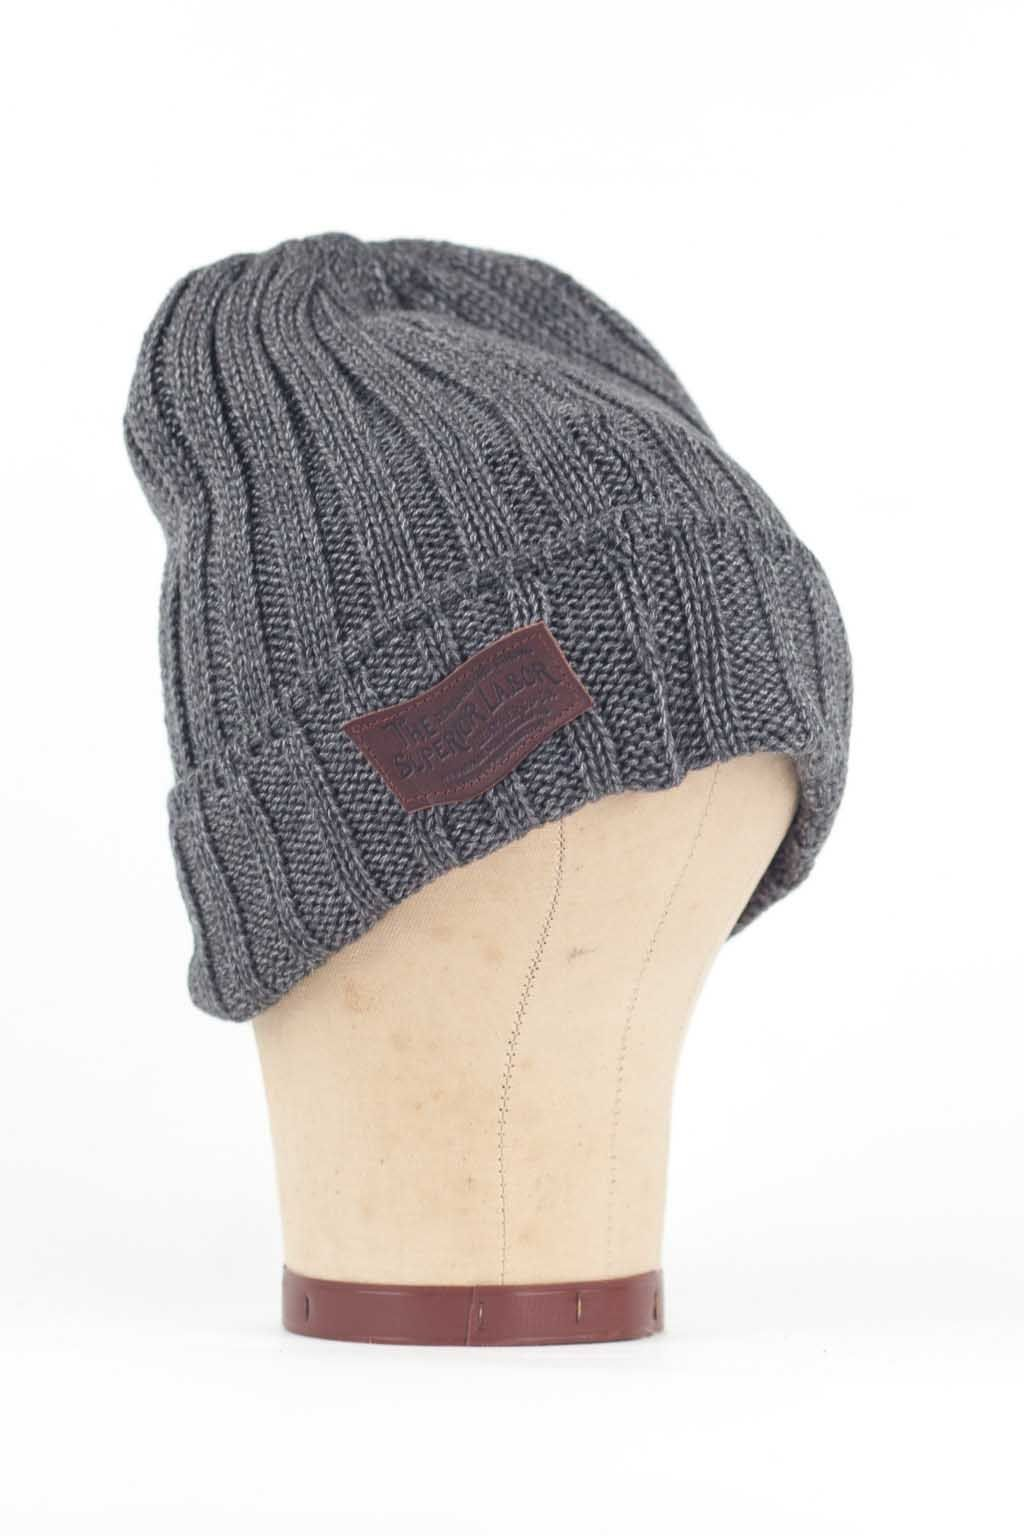 81a3eec54db Blue Button Shop - Knit Cap - Charcoal - SUP15WHATUCHR103782 ...